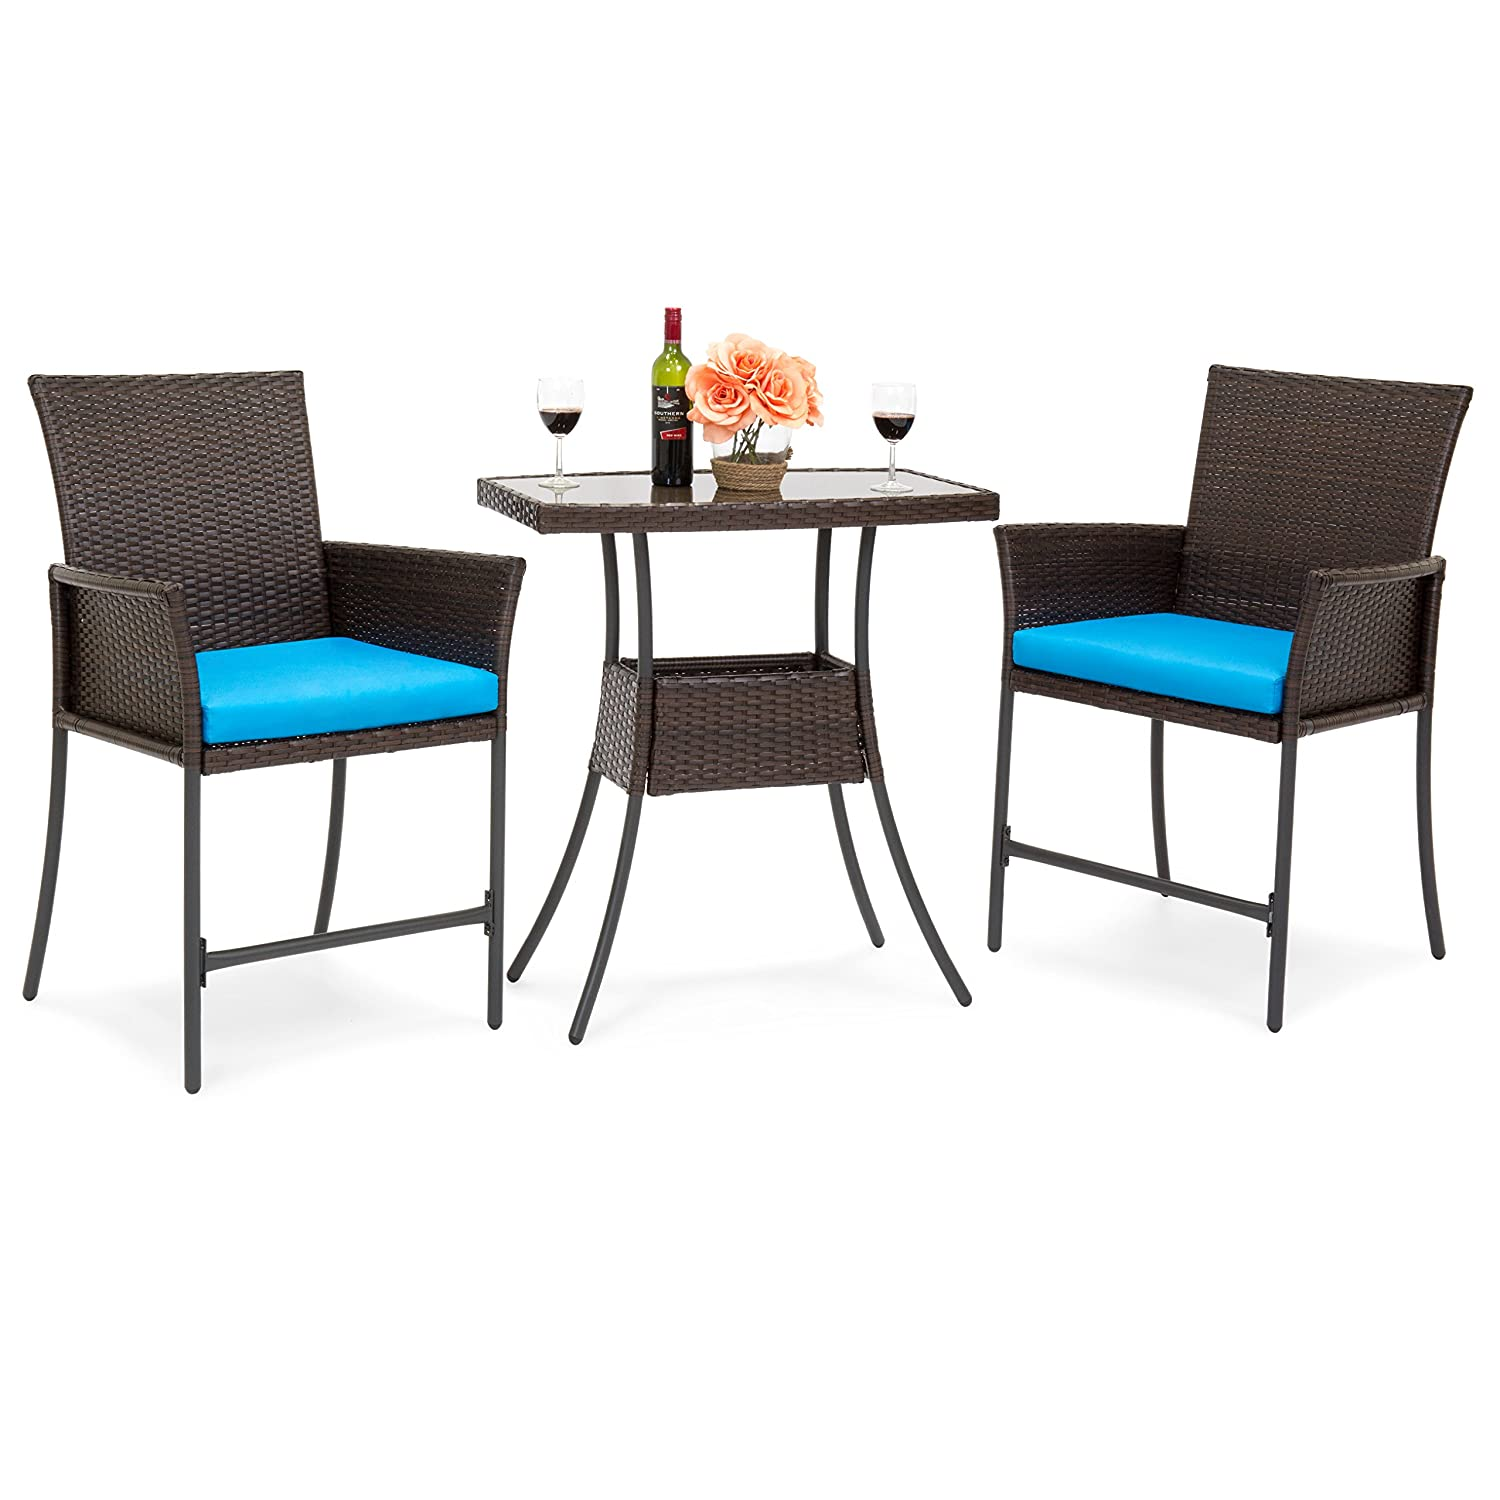 Care 4 home llc 3 piece patio bistro dining set square table and 2 padded chairs durable wicker construction with steel frame outdoor furniture